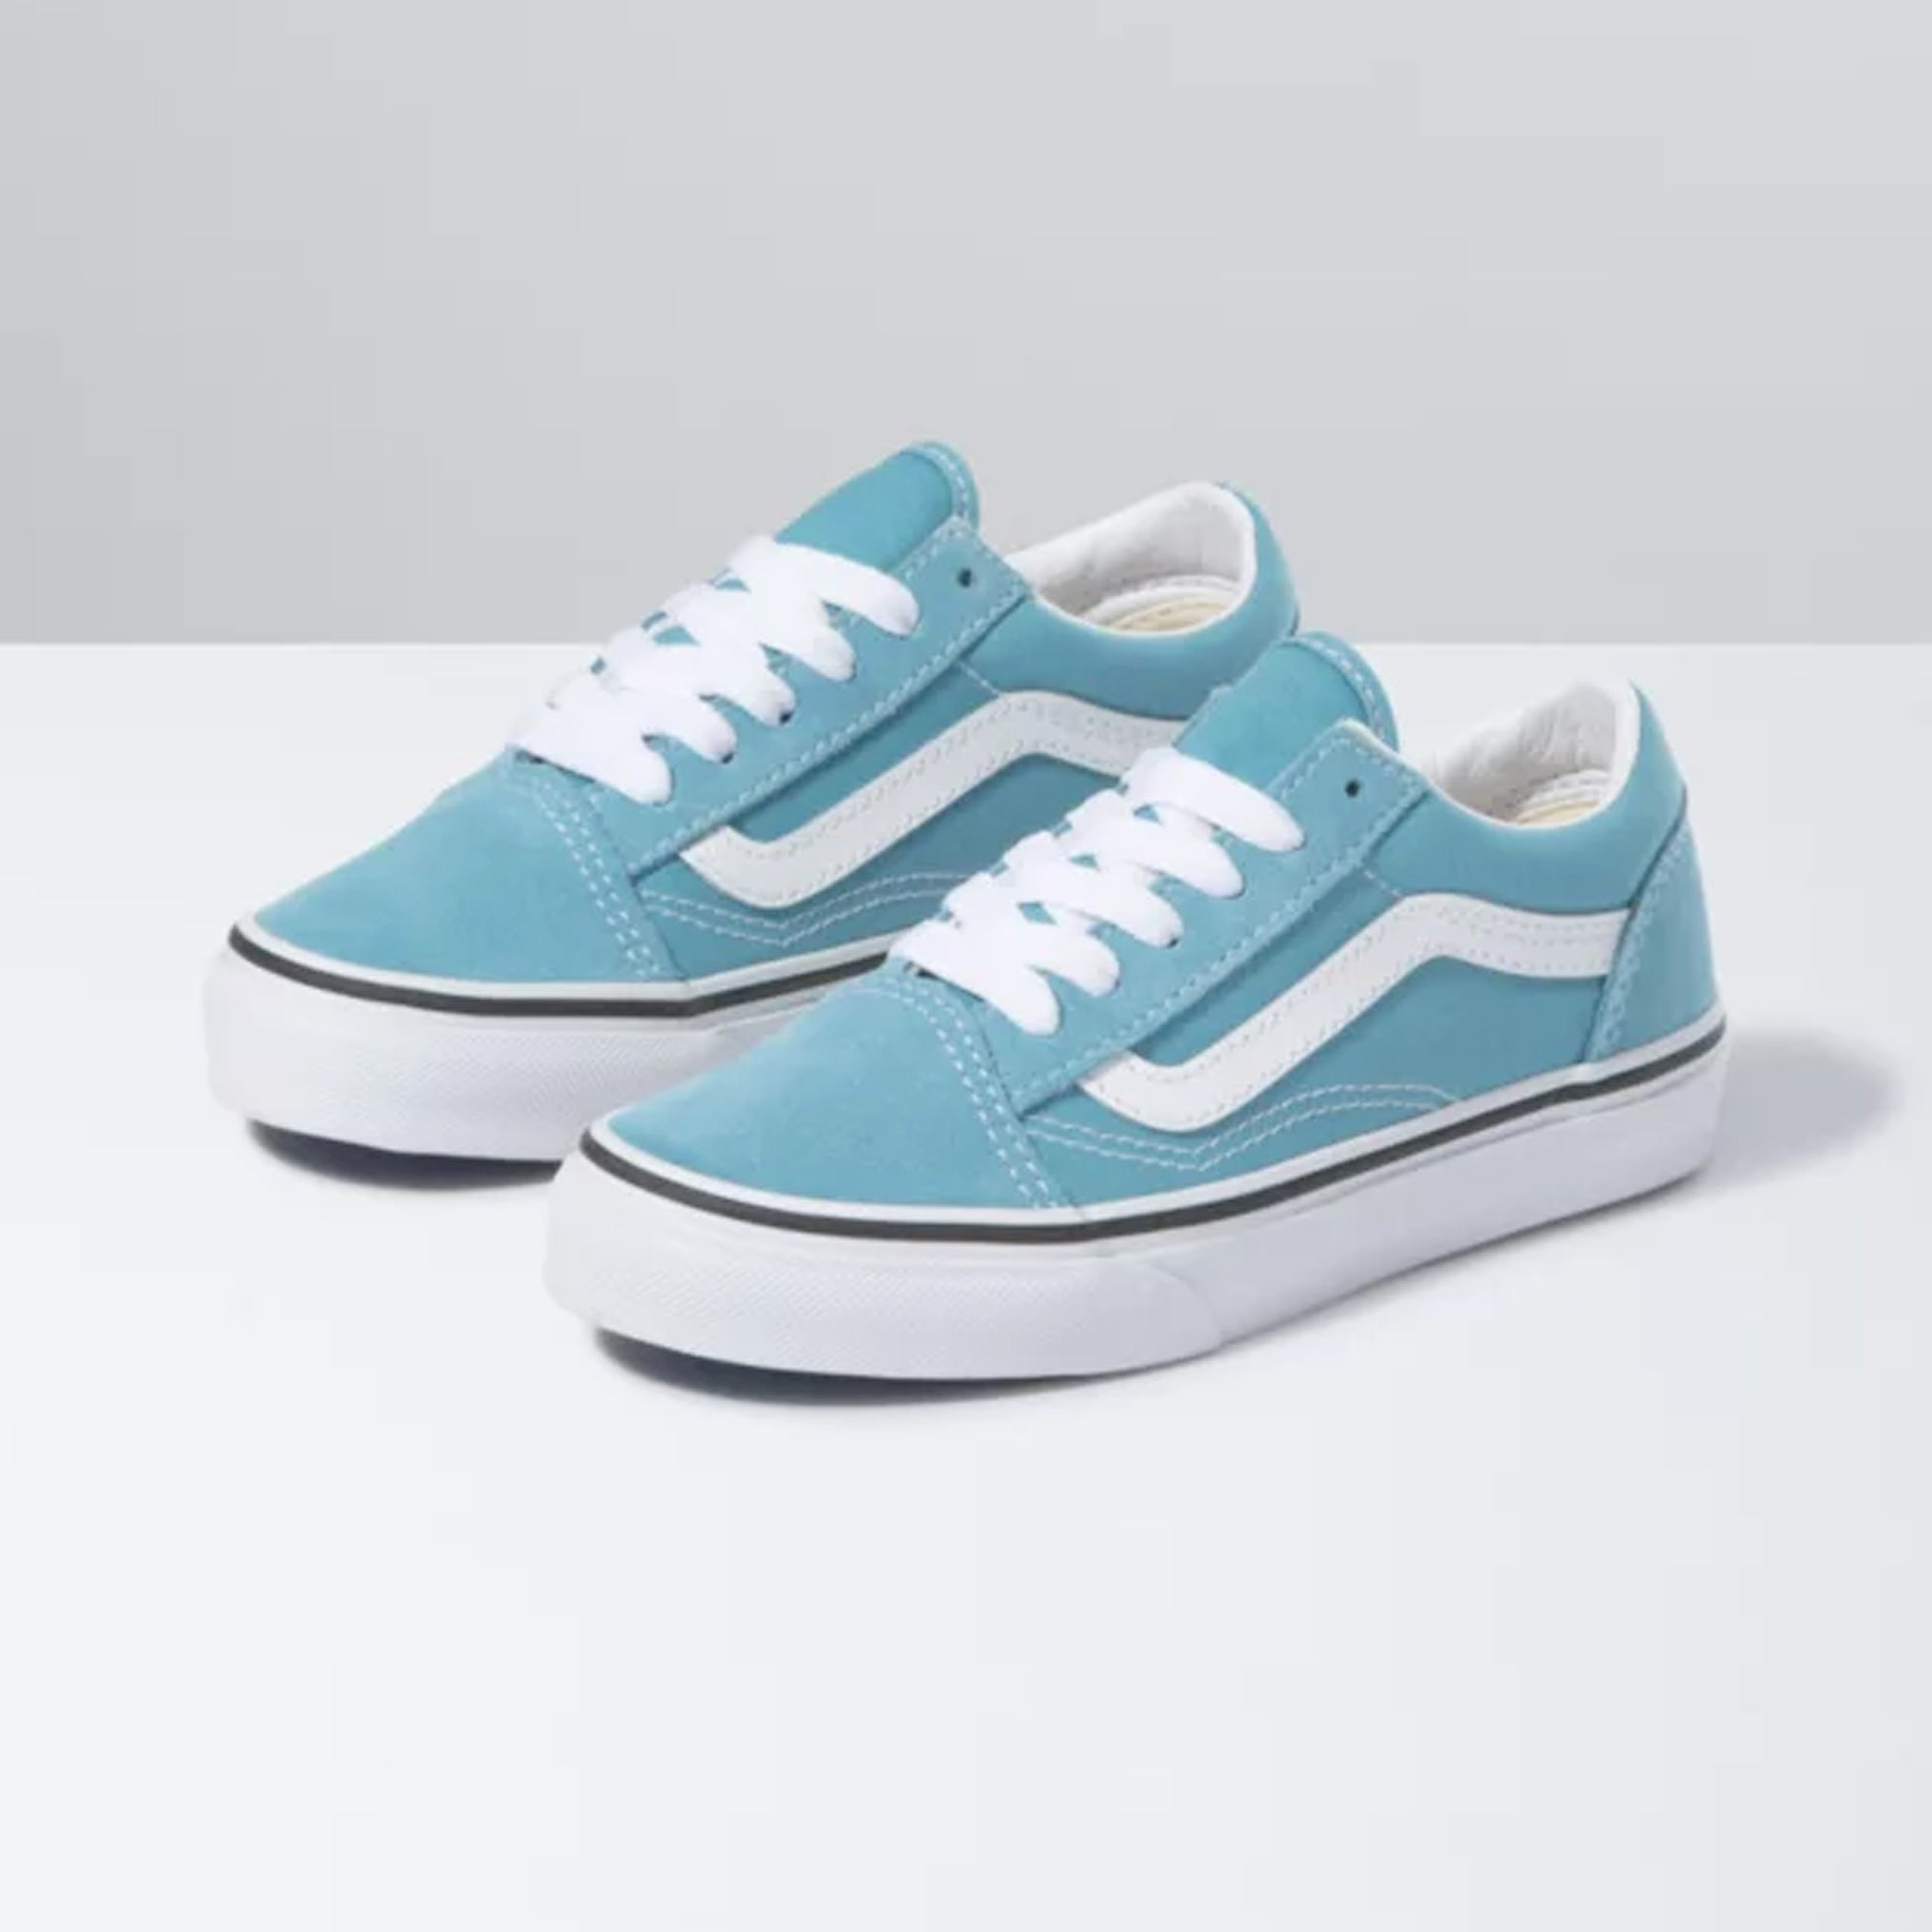 Vans Old Skool Youth Boy's Shoes